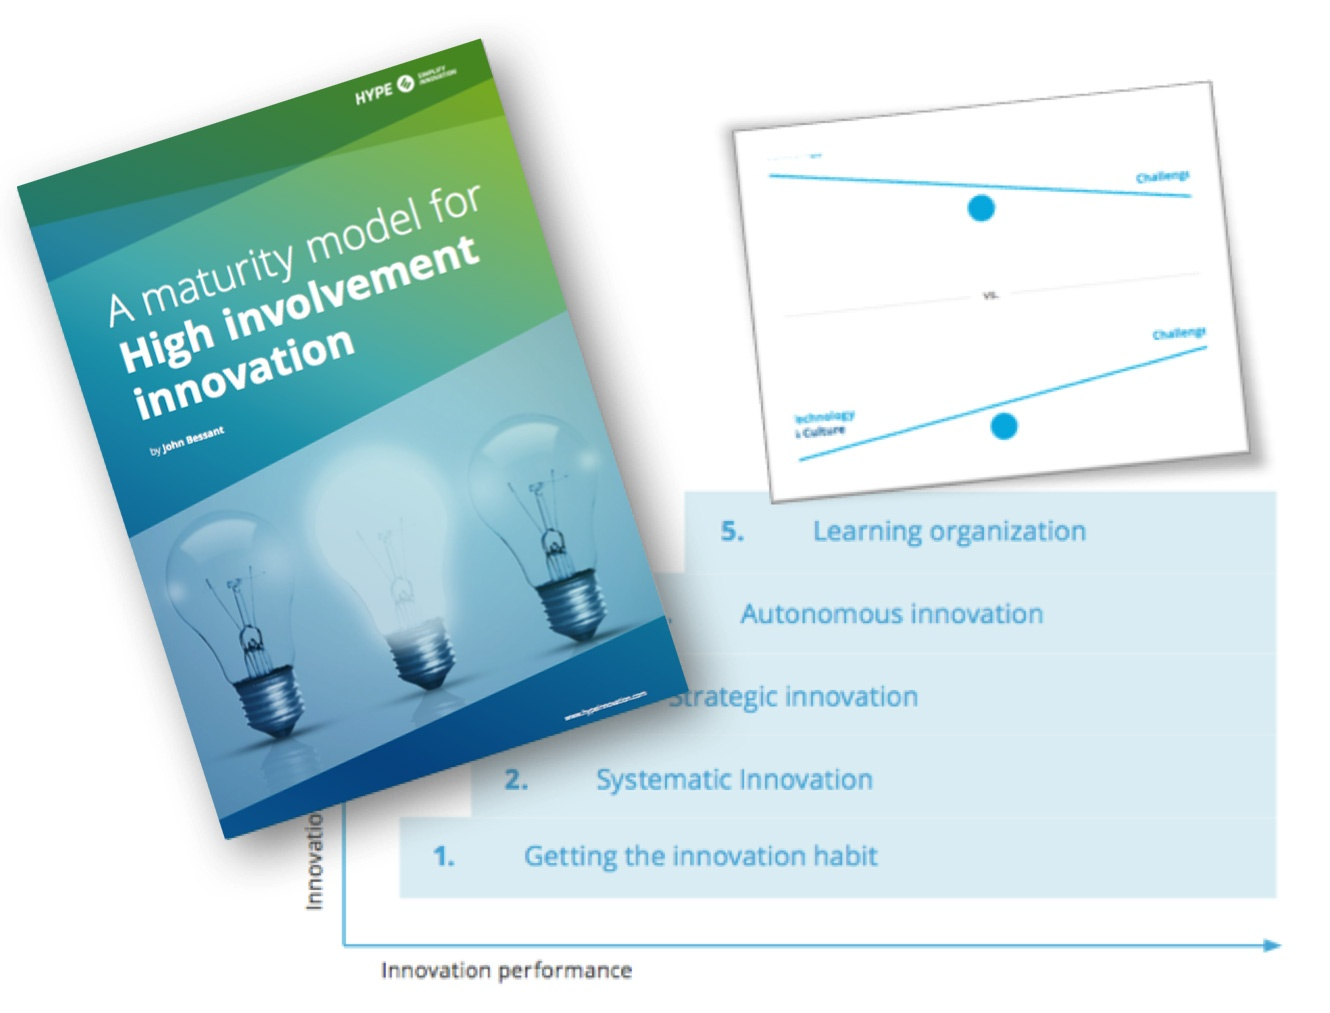 brochure about maturity model for high involvement innovation